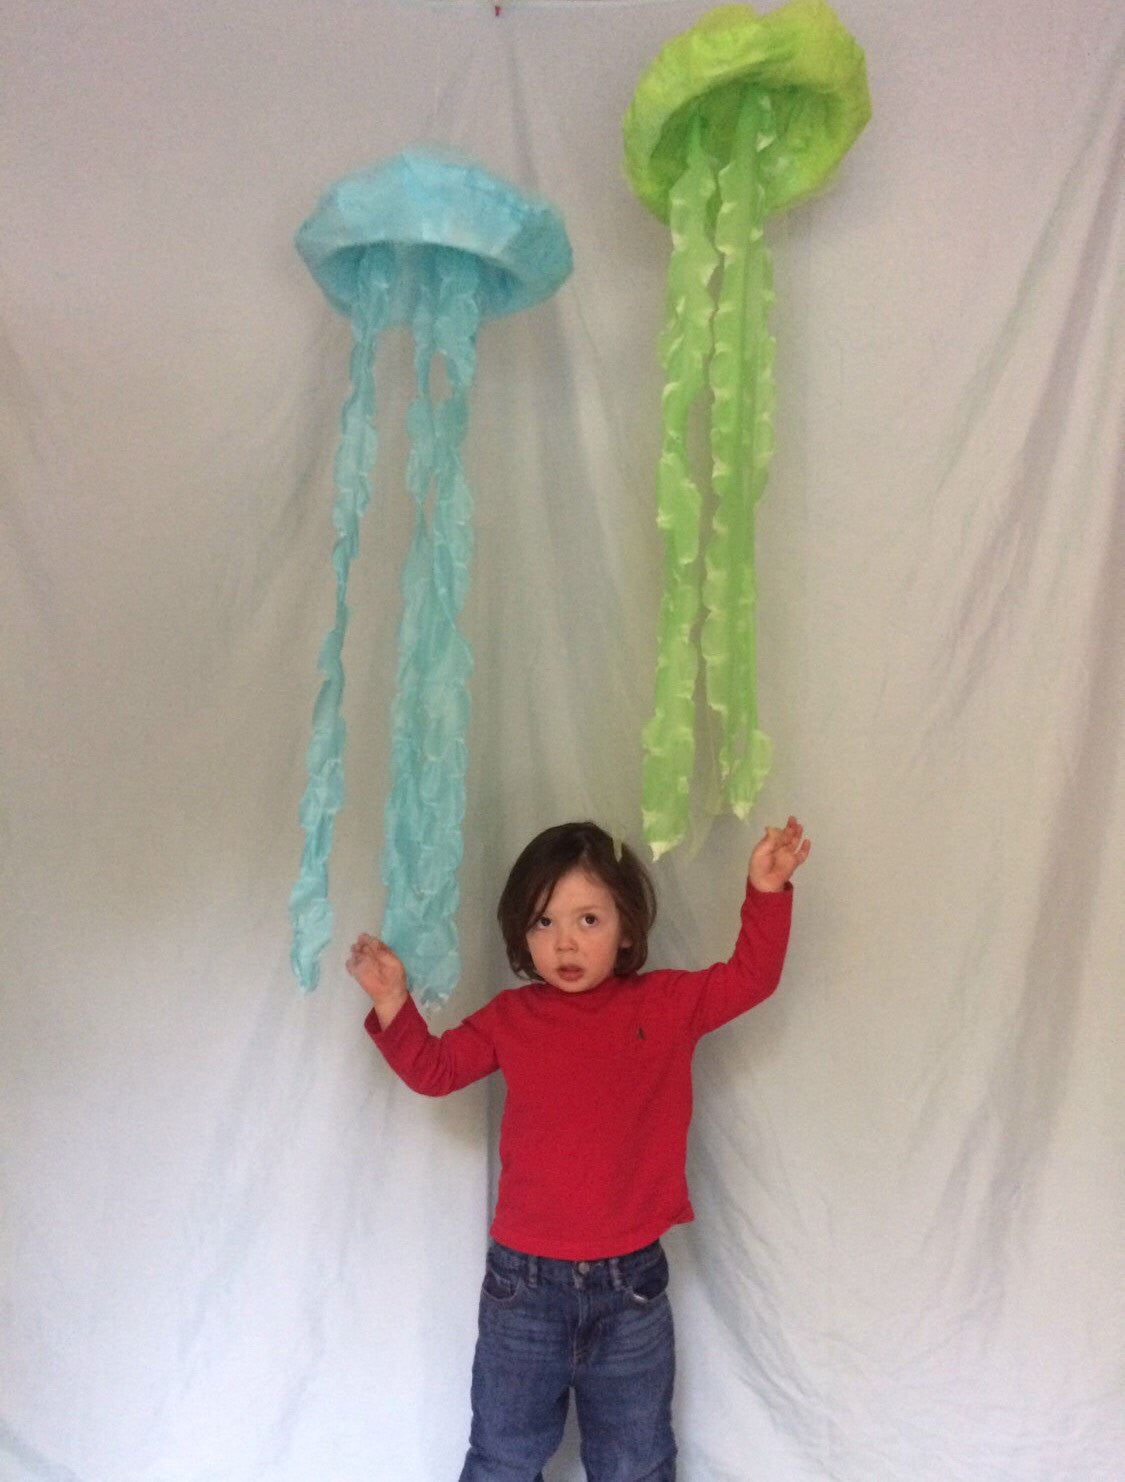 Large hanging jelly fish underwater mermaid decor